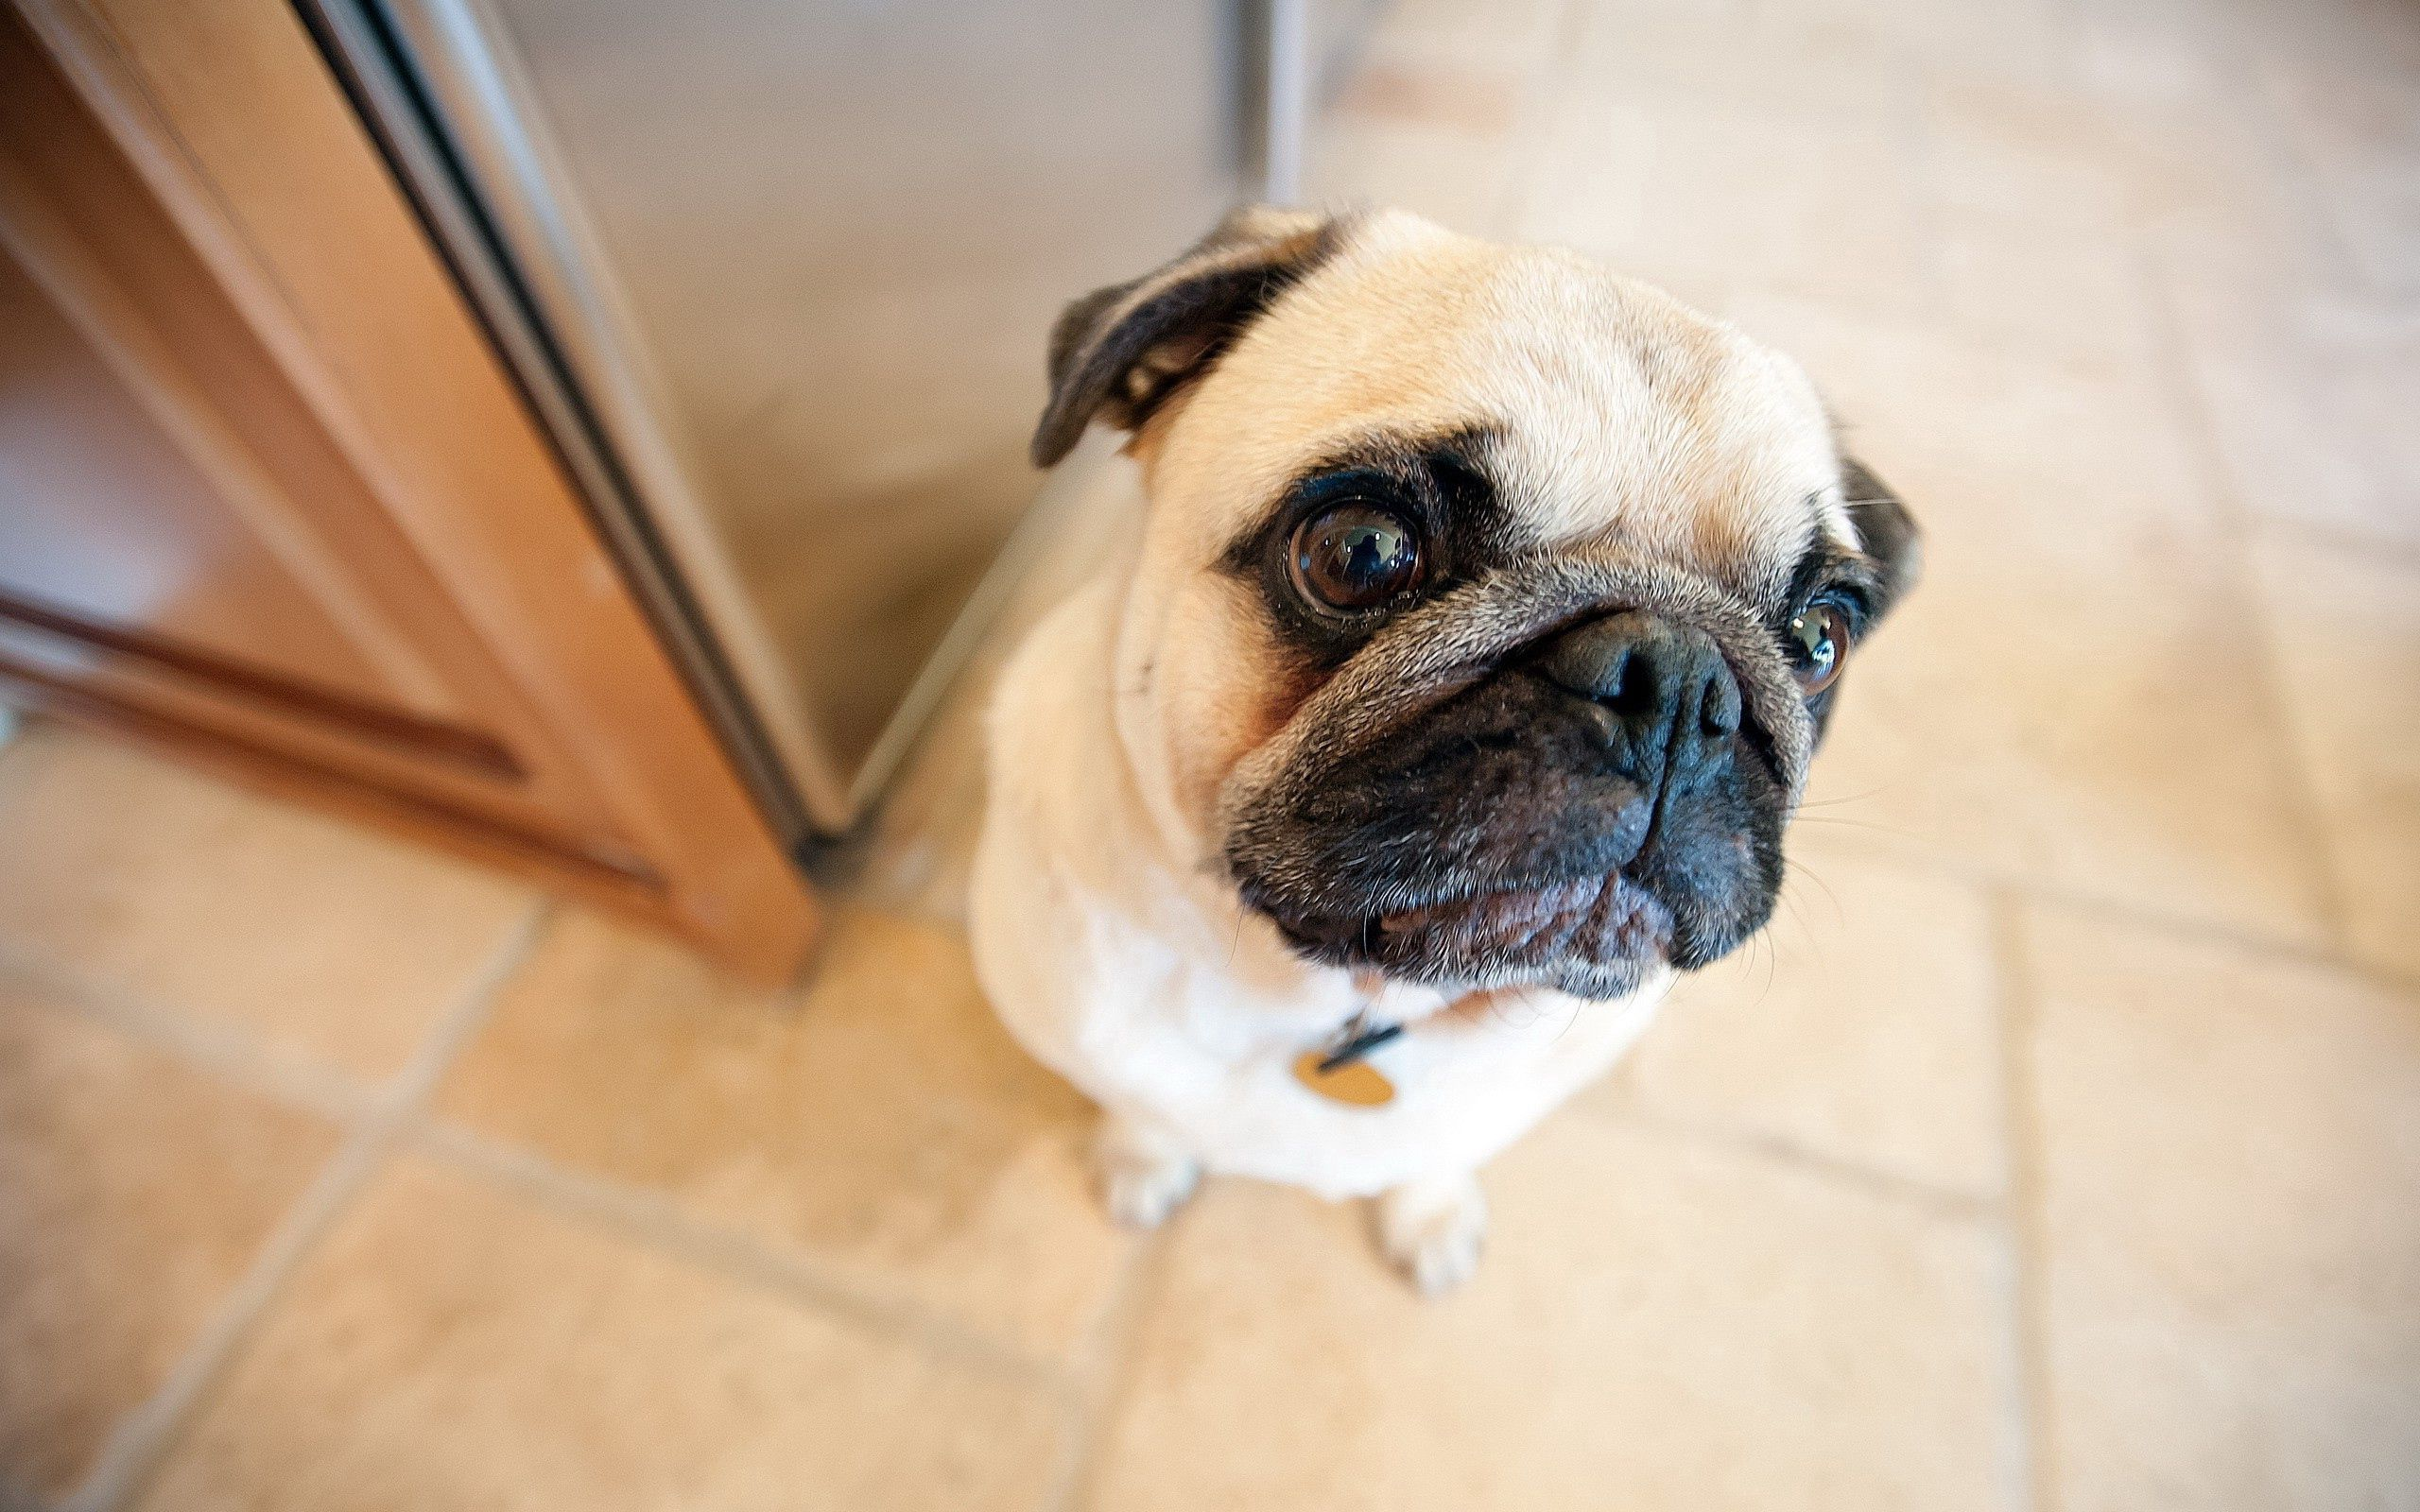 131058 download wallpaper Animals, Pug, Muzzle, Dog, Sight, Opinion screensavers and pictures for free